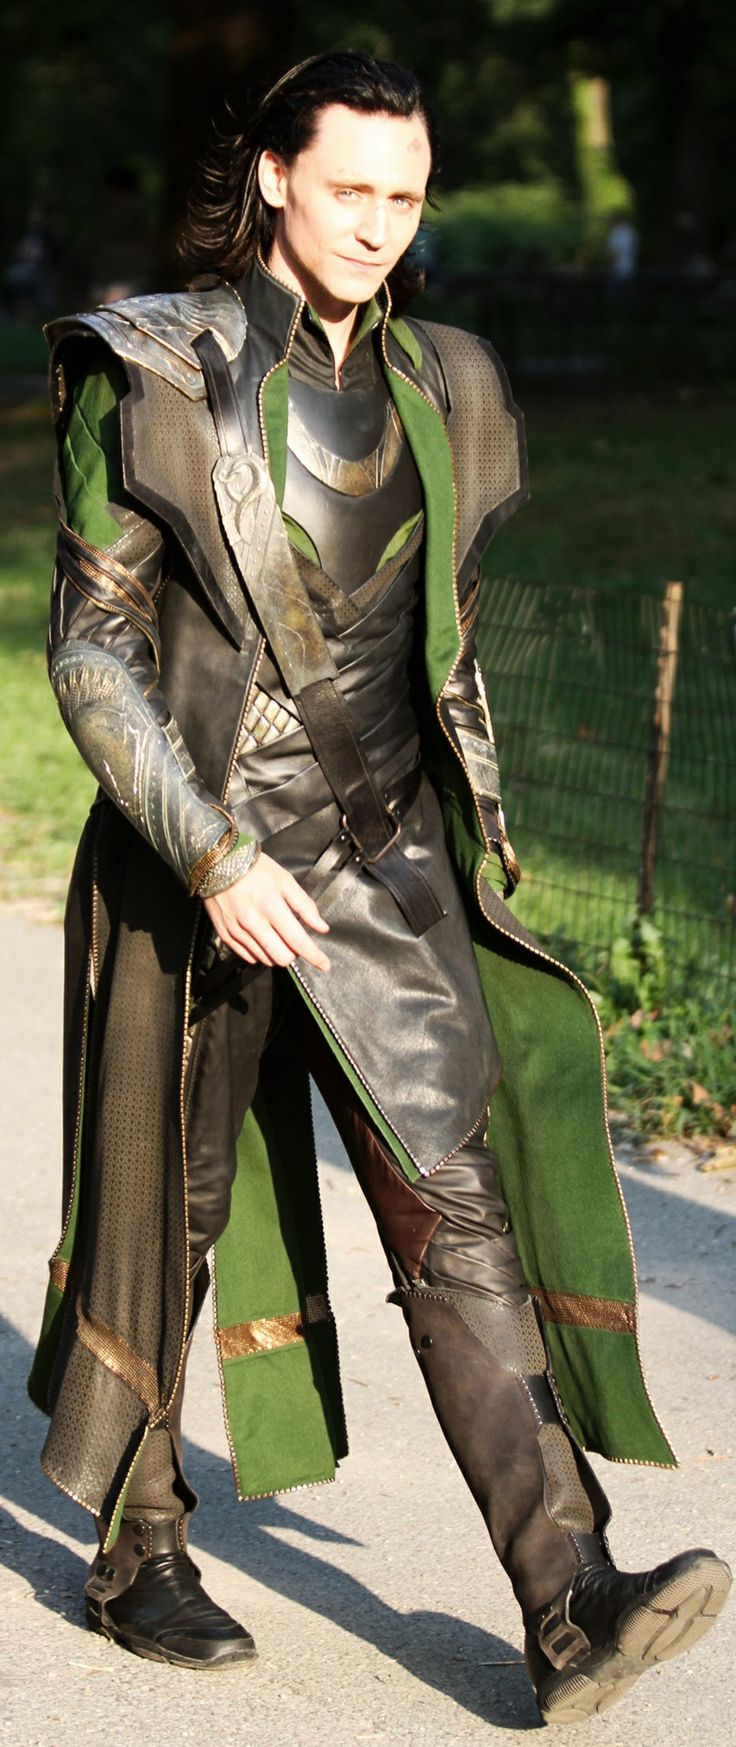 Tom Hiddleston IS Loki!! I don't think this character would be so beloved had it not been for the fine actor who portrays him!